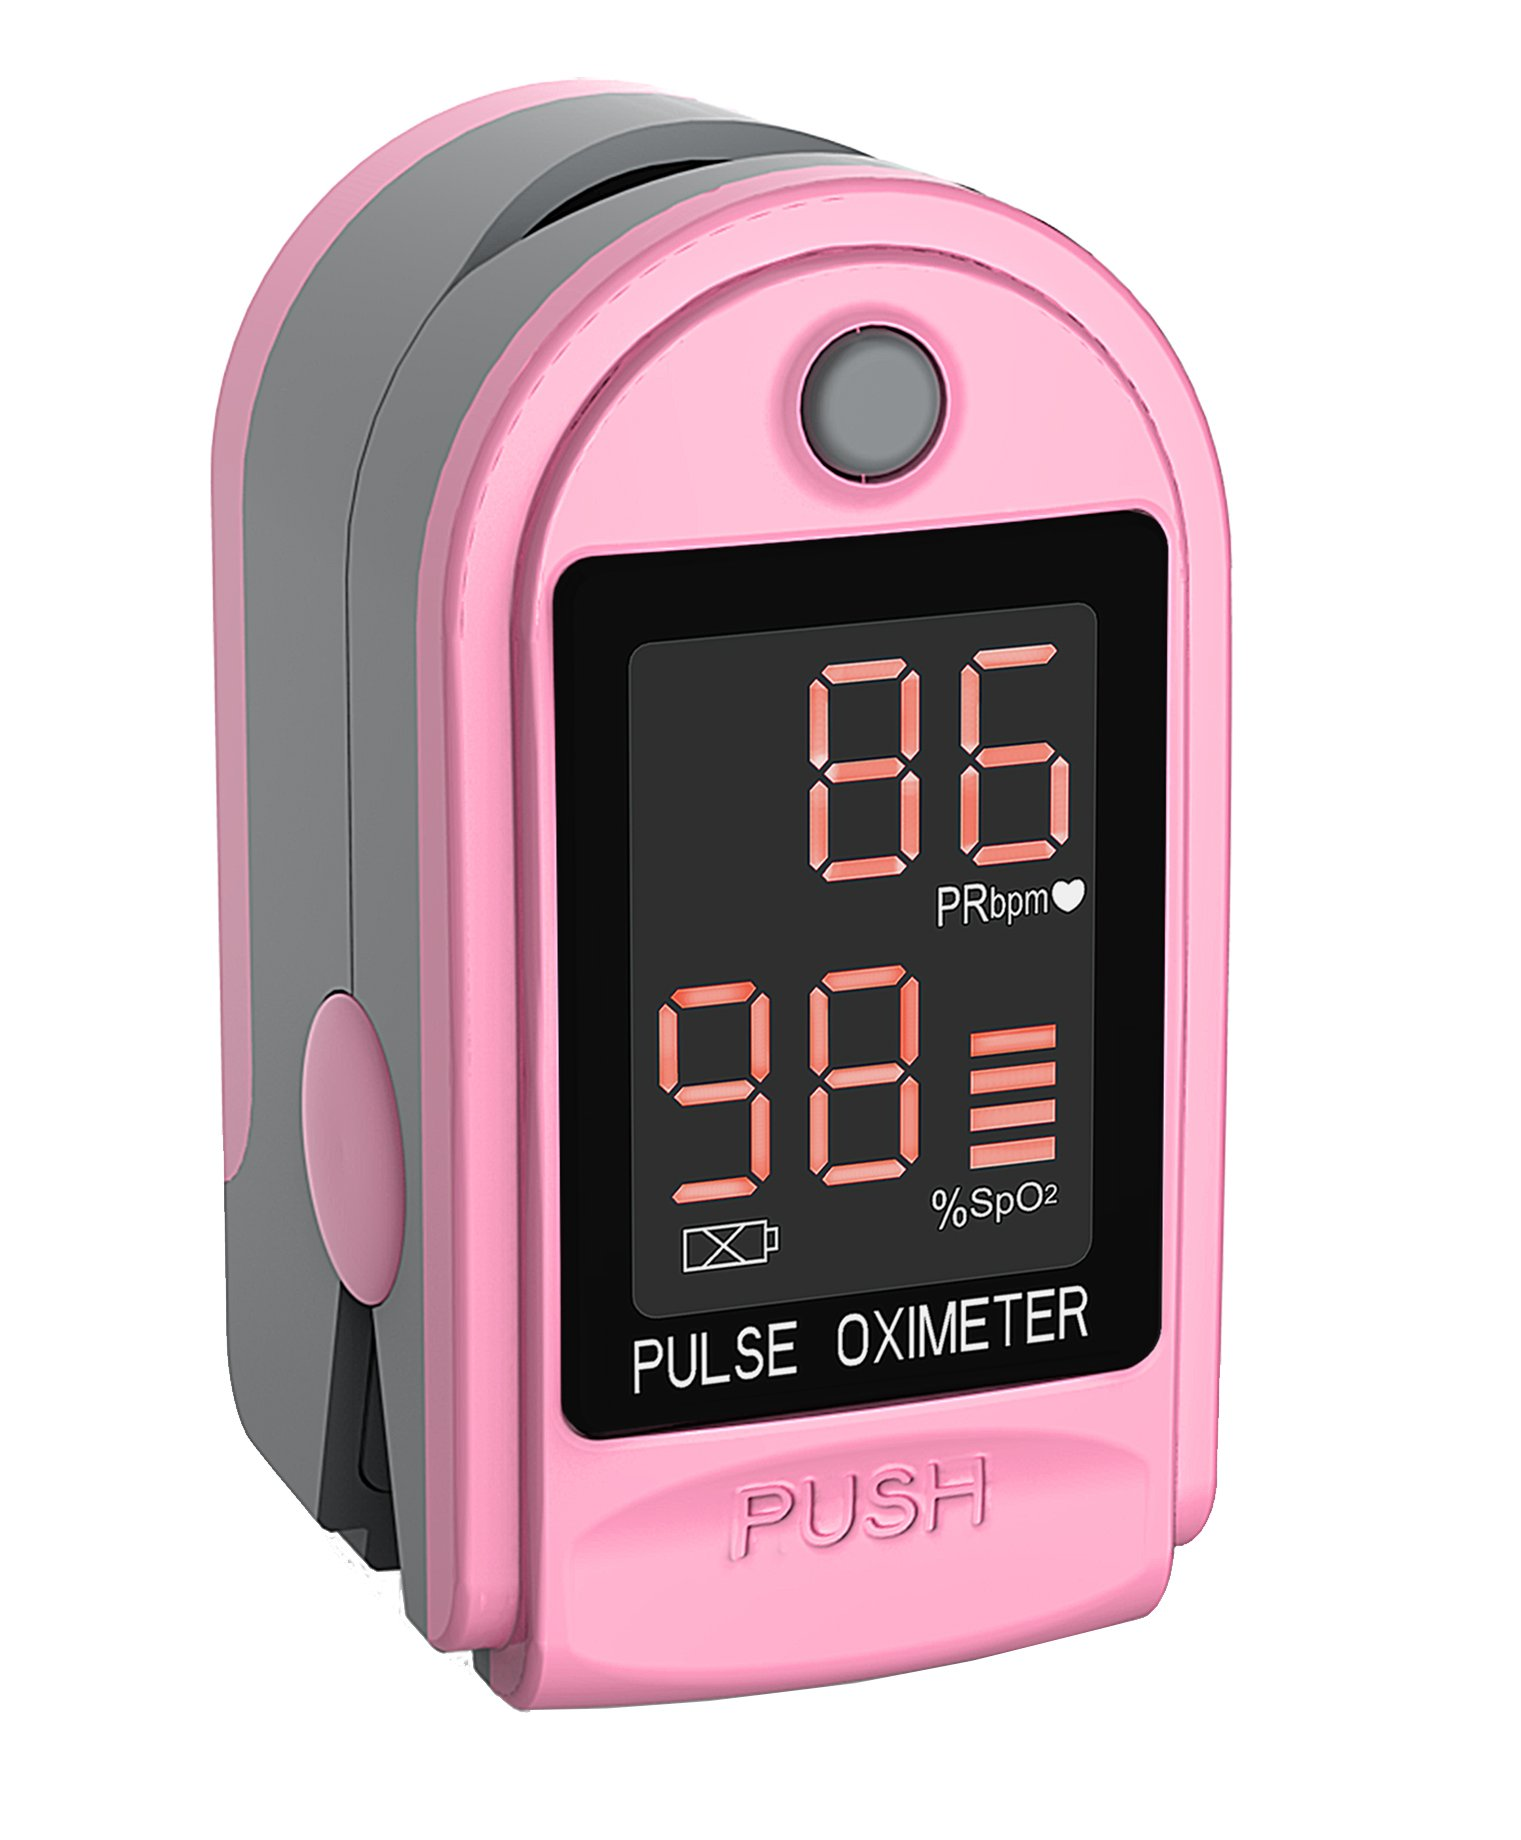 Concord Health Supply EAD Essentials Fingertip Pulse Oximeter Blood Oxygen Saturation SpO2 Monitor, Includes Silicon Cover, Carrying case, Batteries and Lanyard - Pink